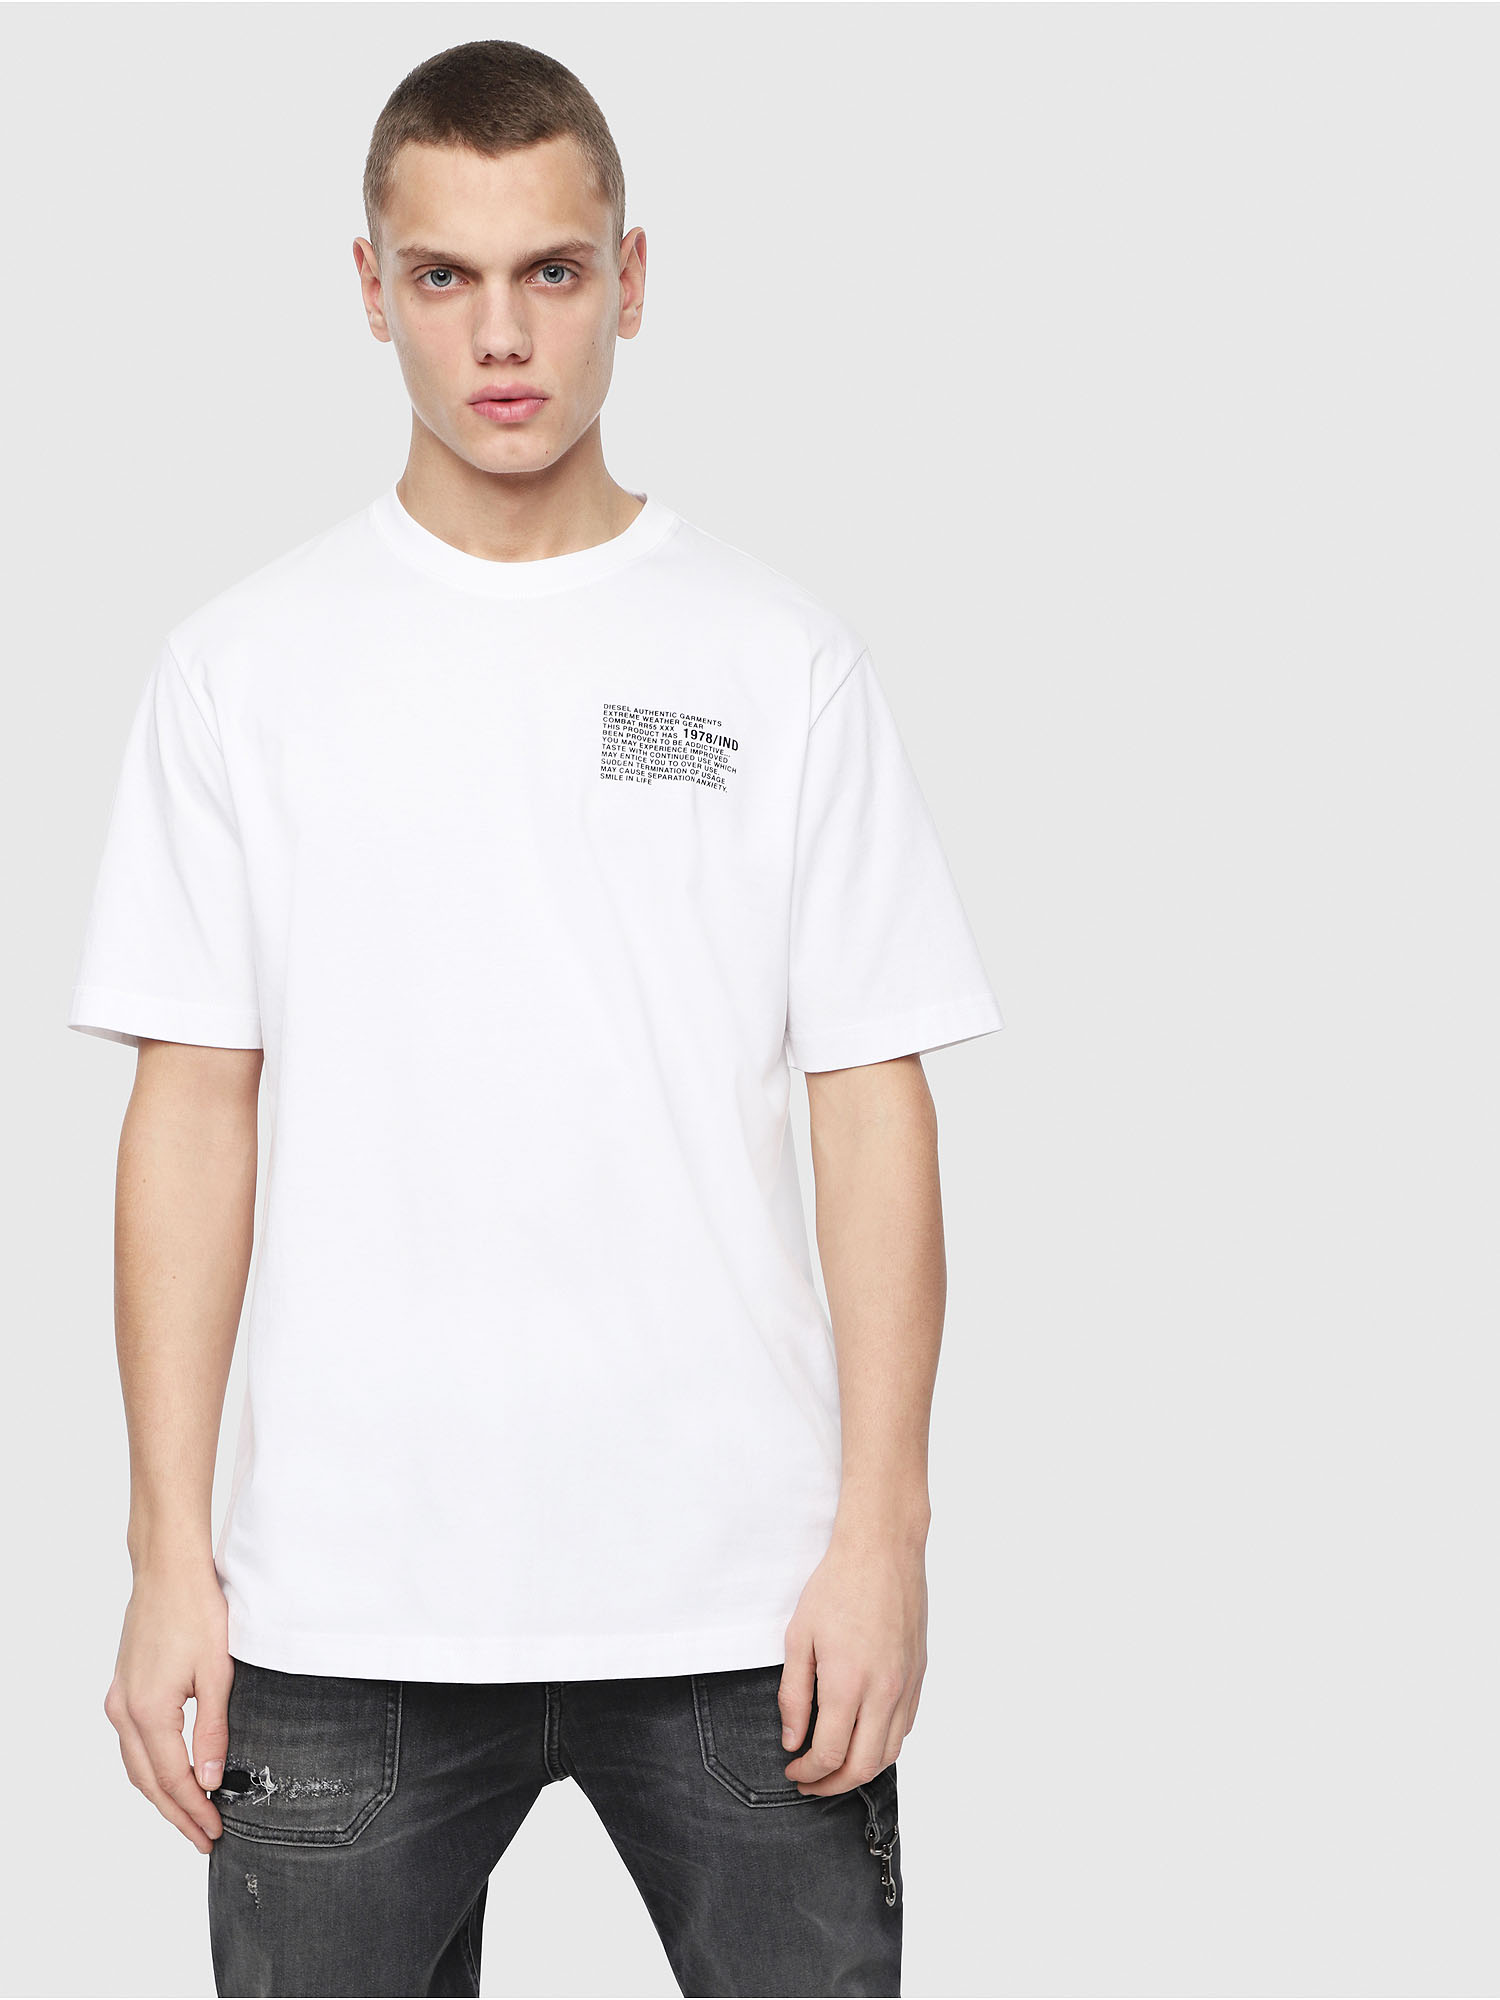 Diesel - T-JUST-Y1,  - T-Shirts - Image 1